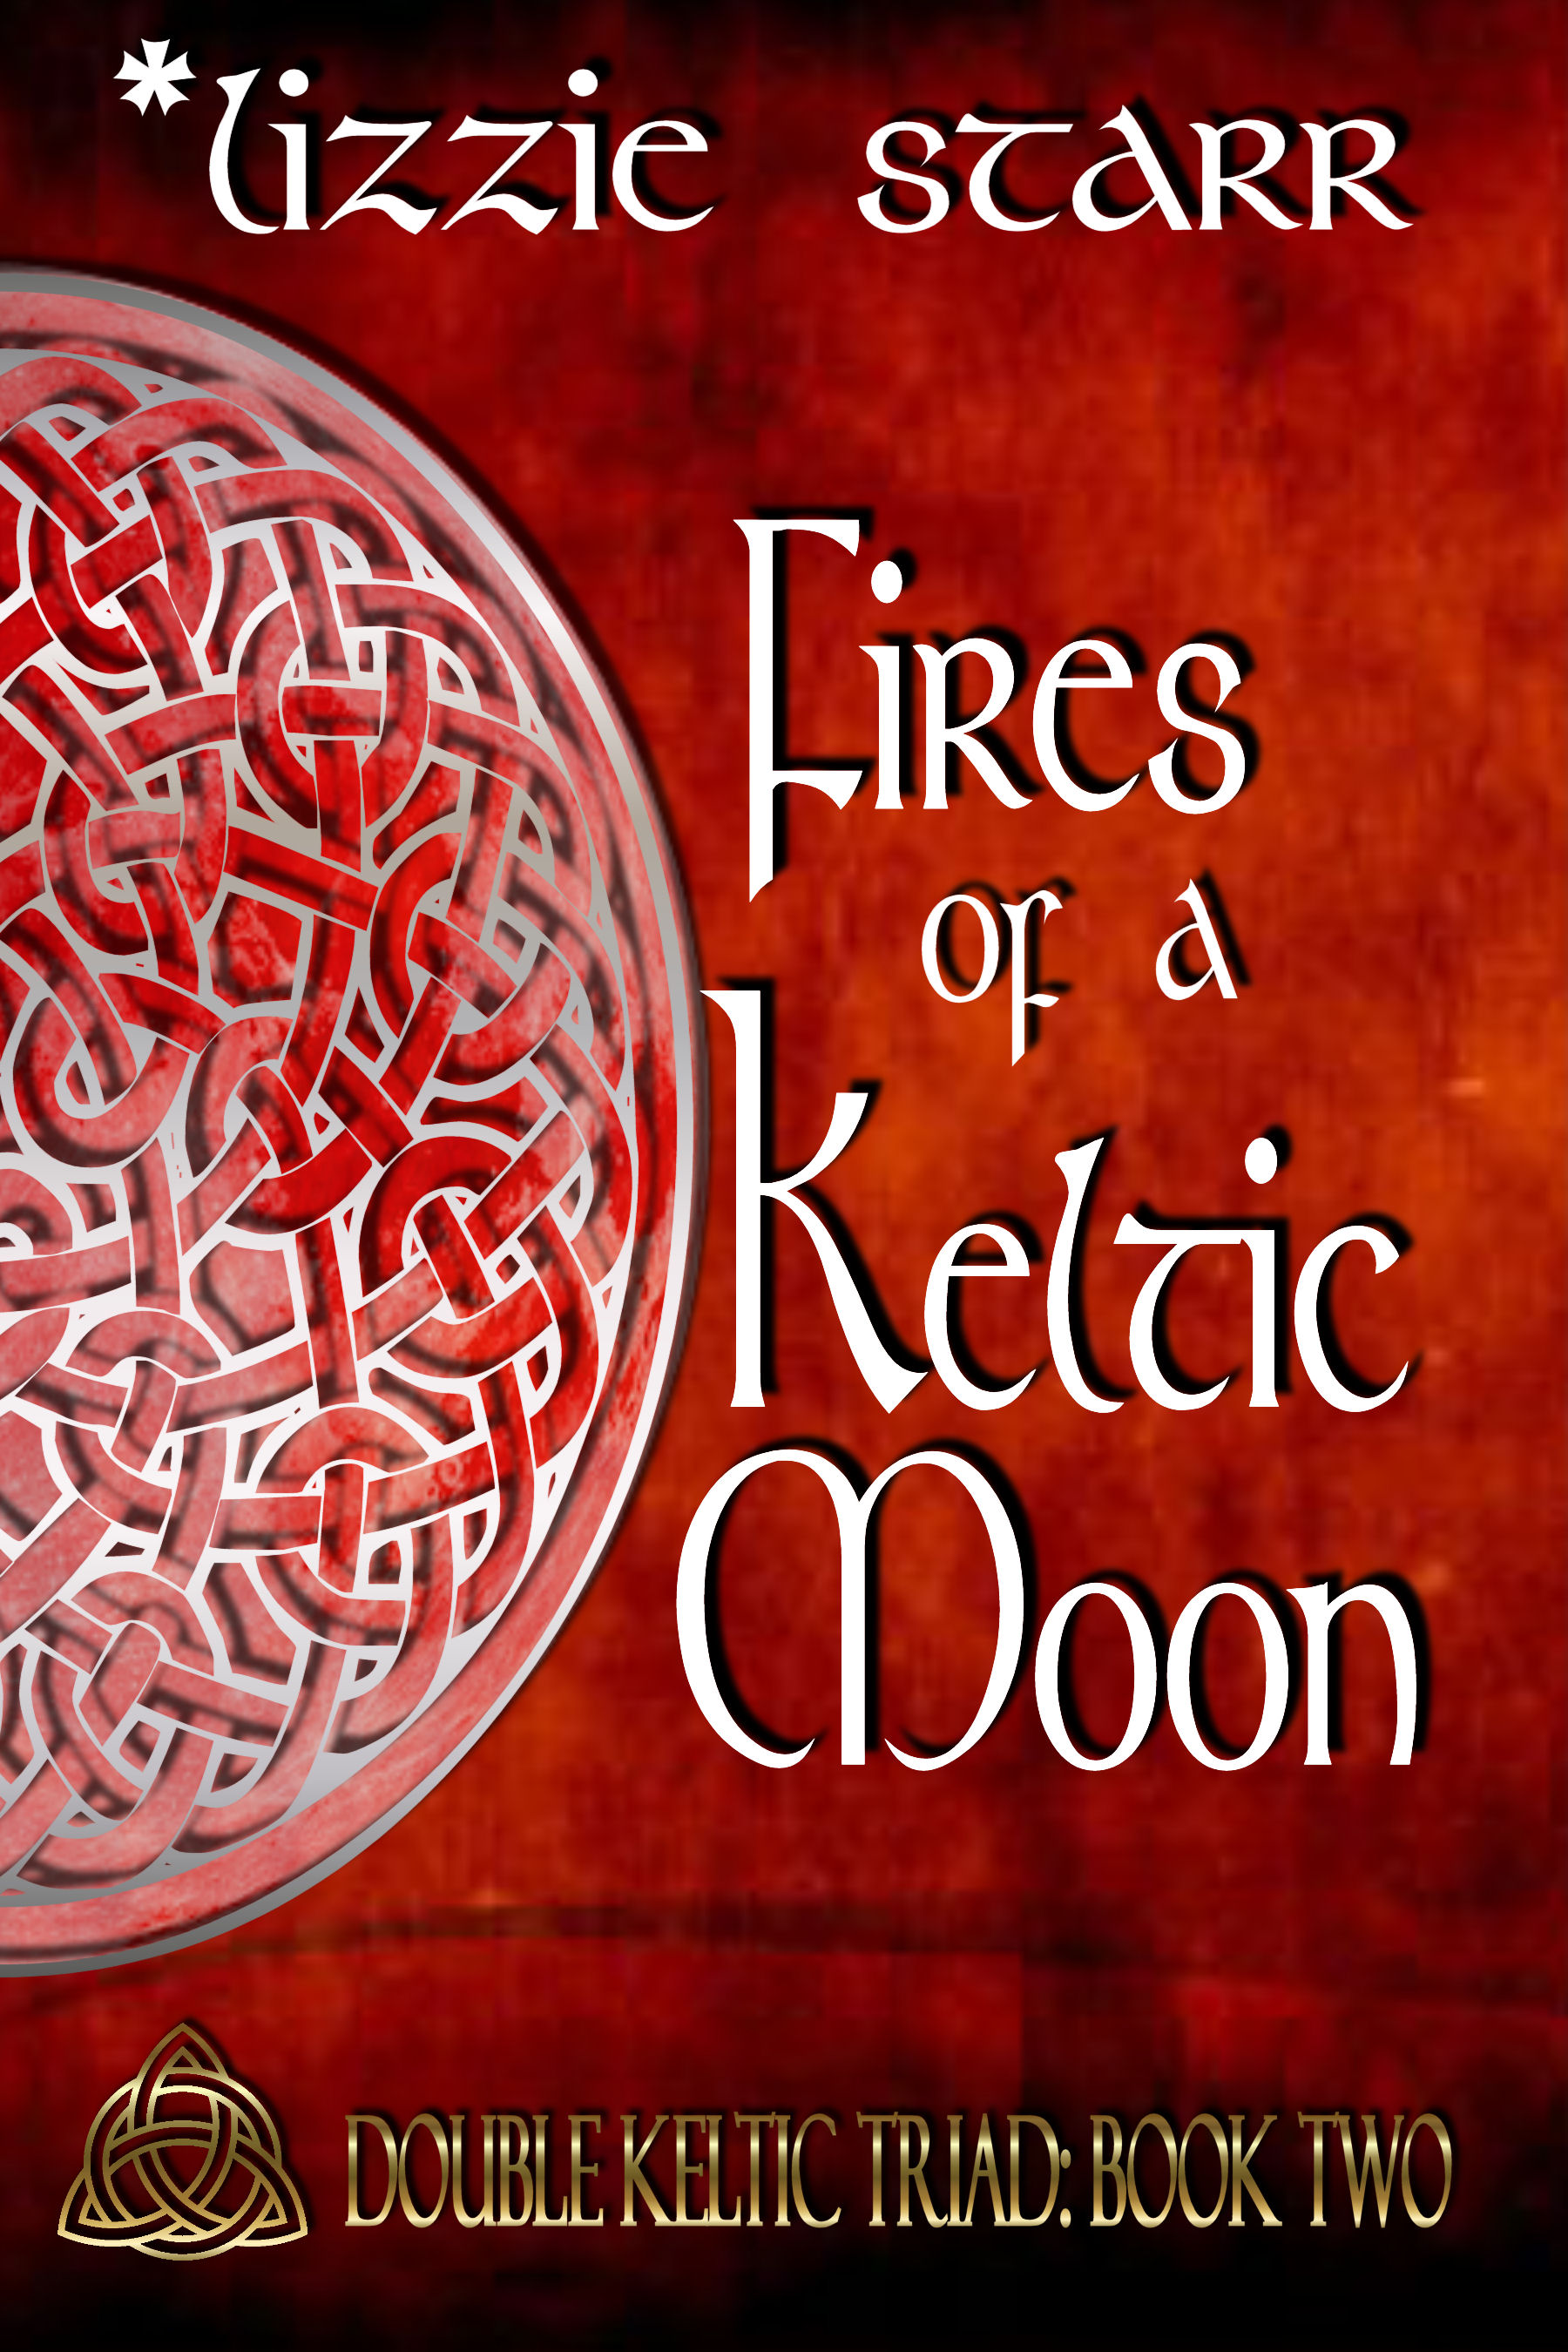 - Fires of a Keltic Moon